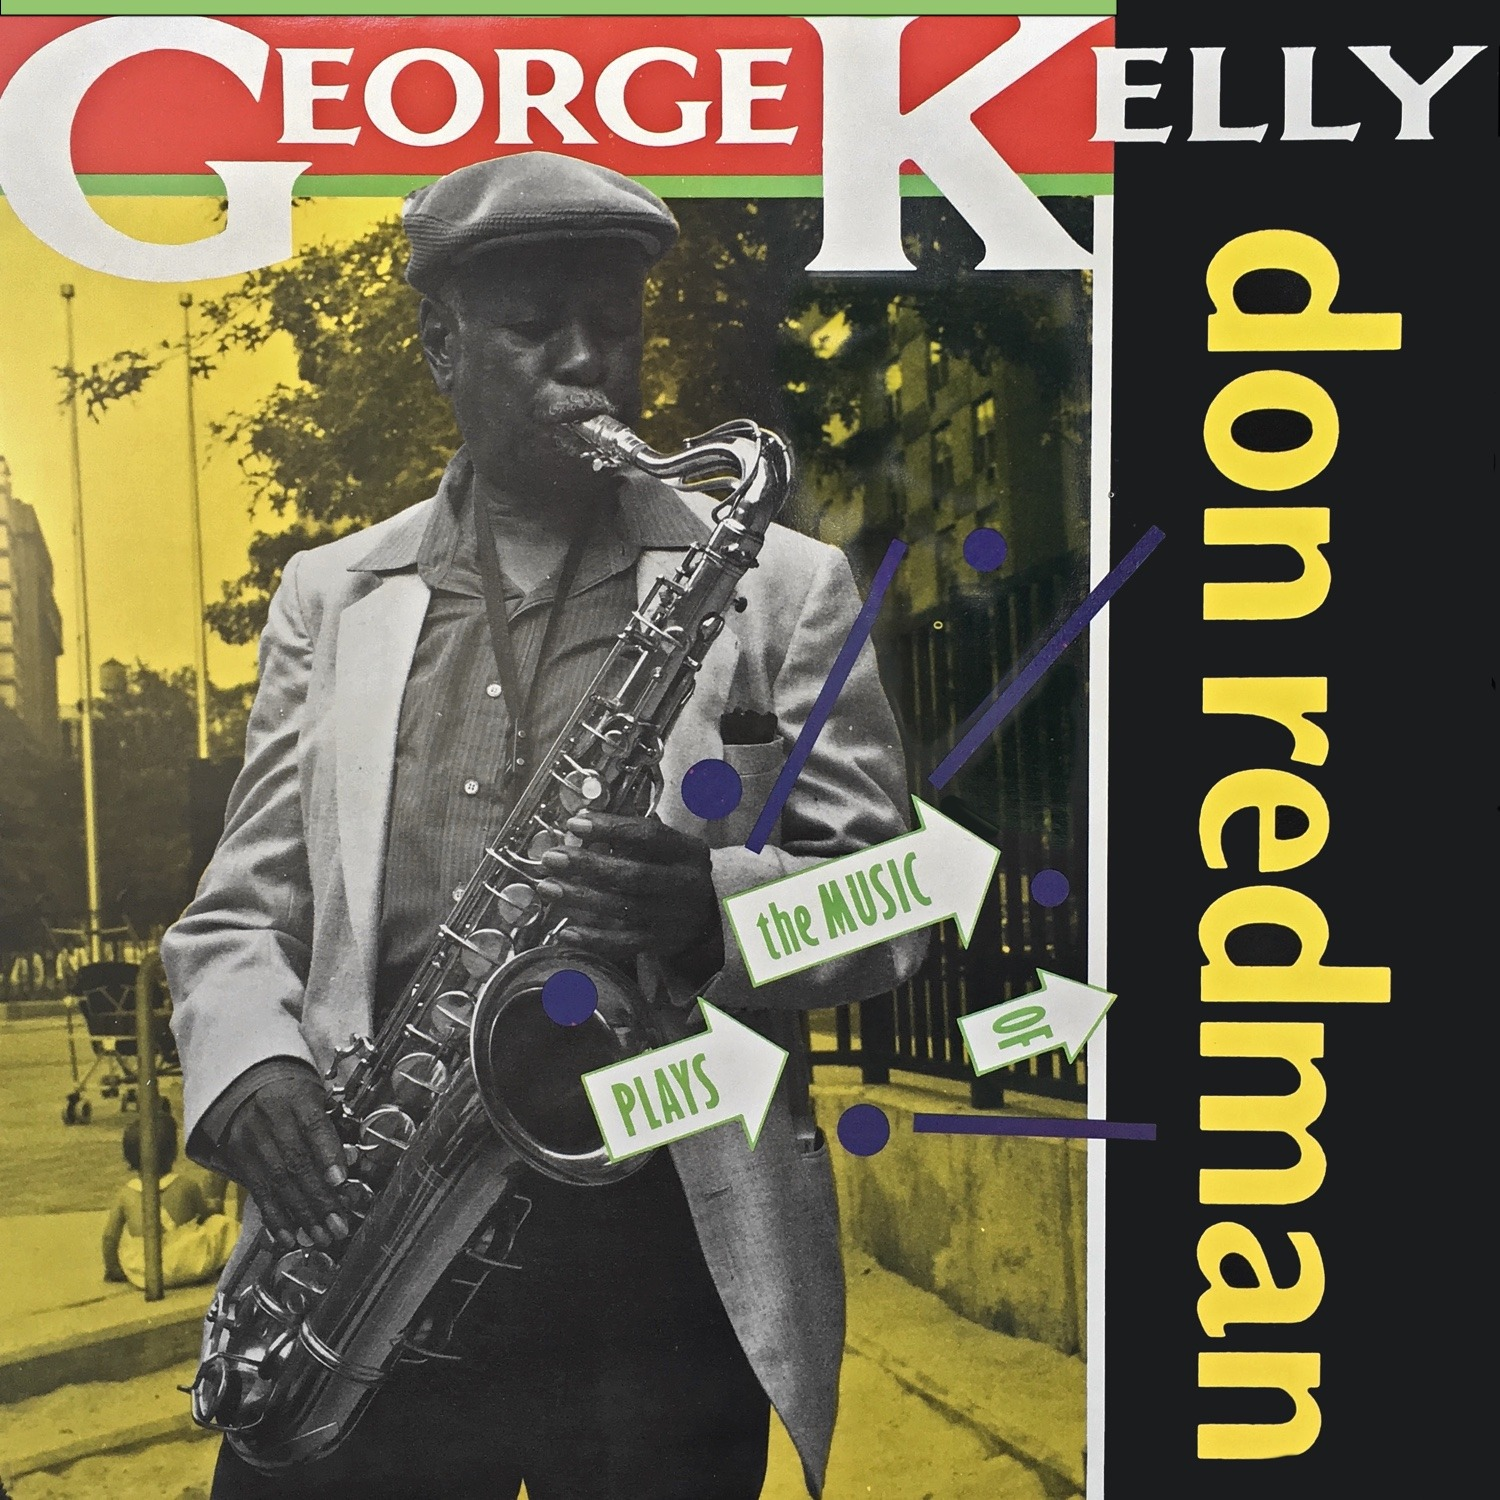 SR-0262 George Kelly - Plays the Music of Don Redman 686647026209